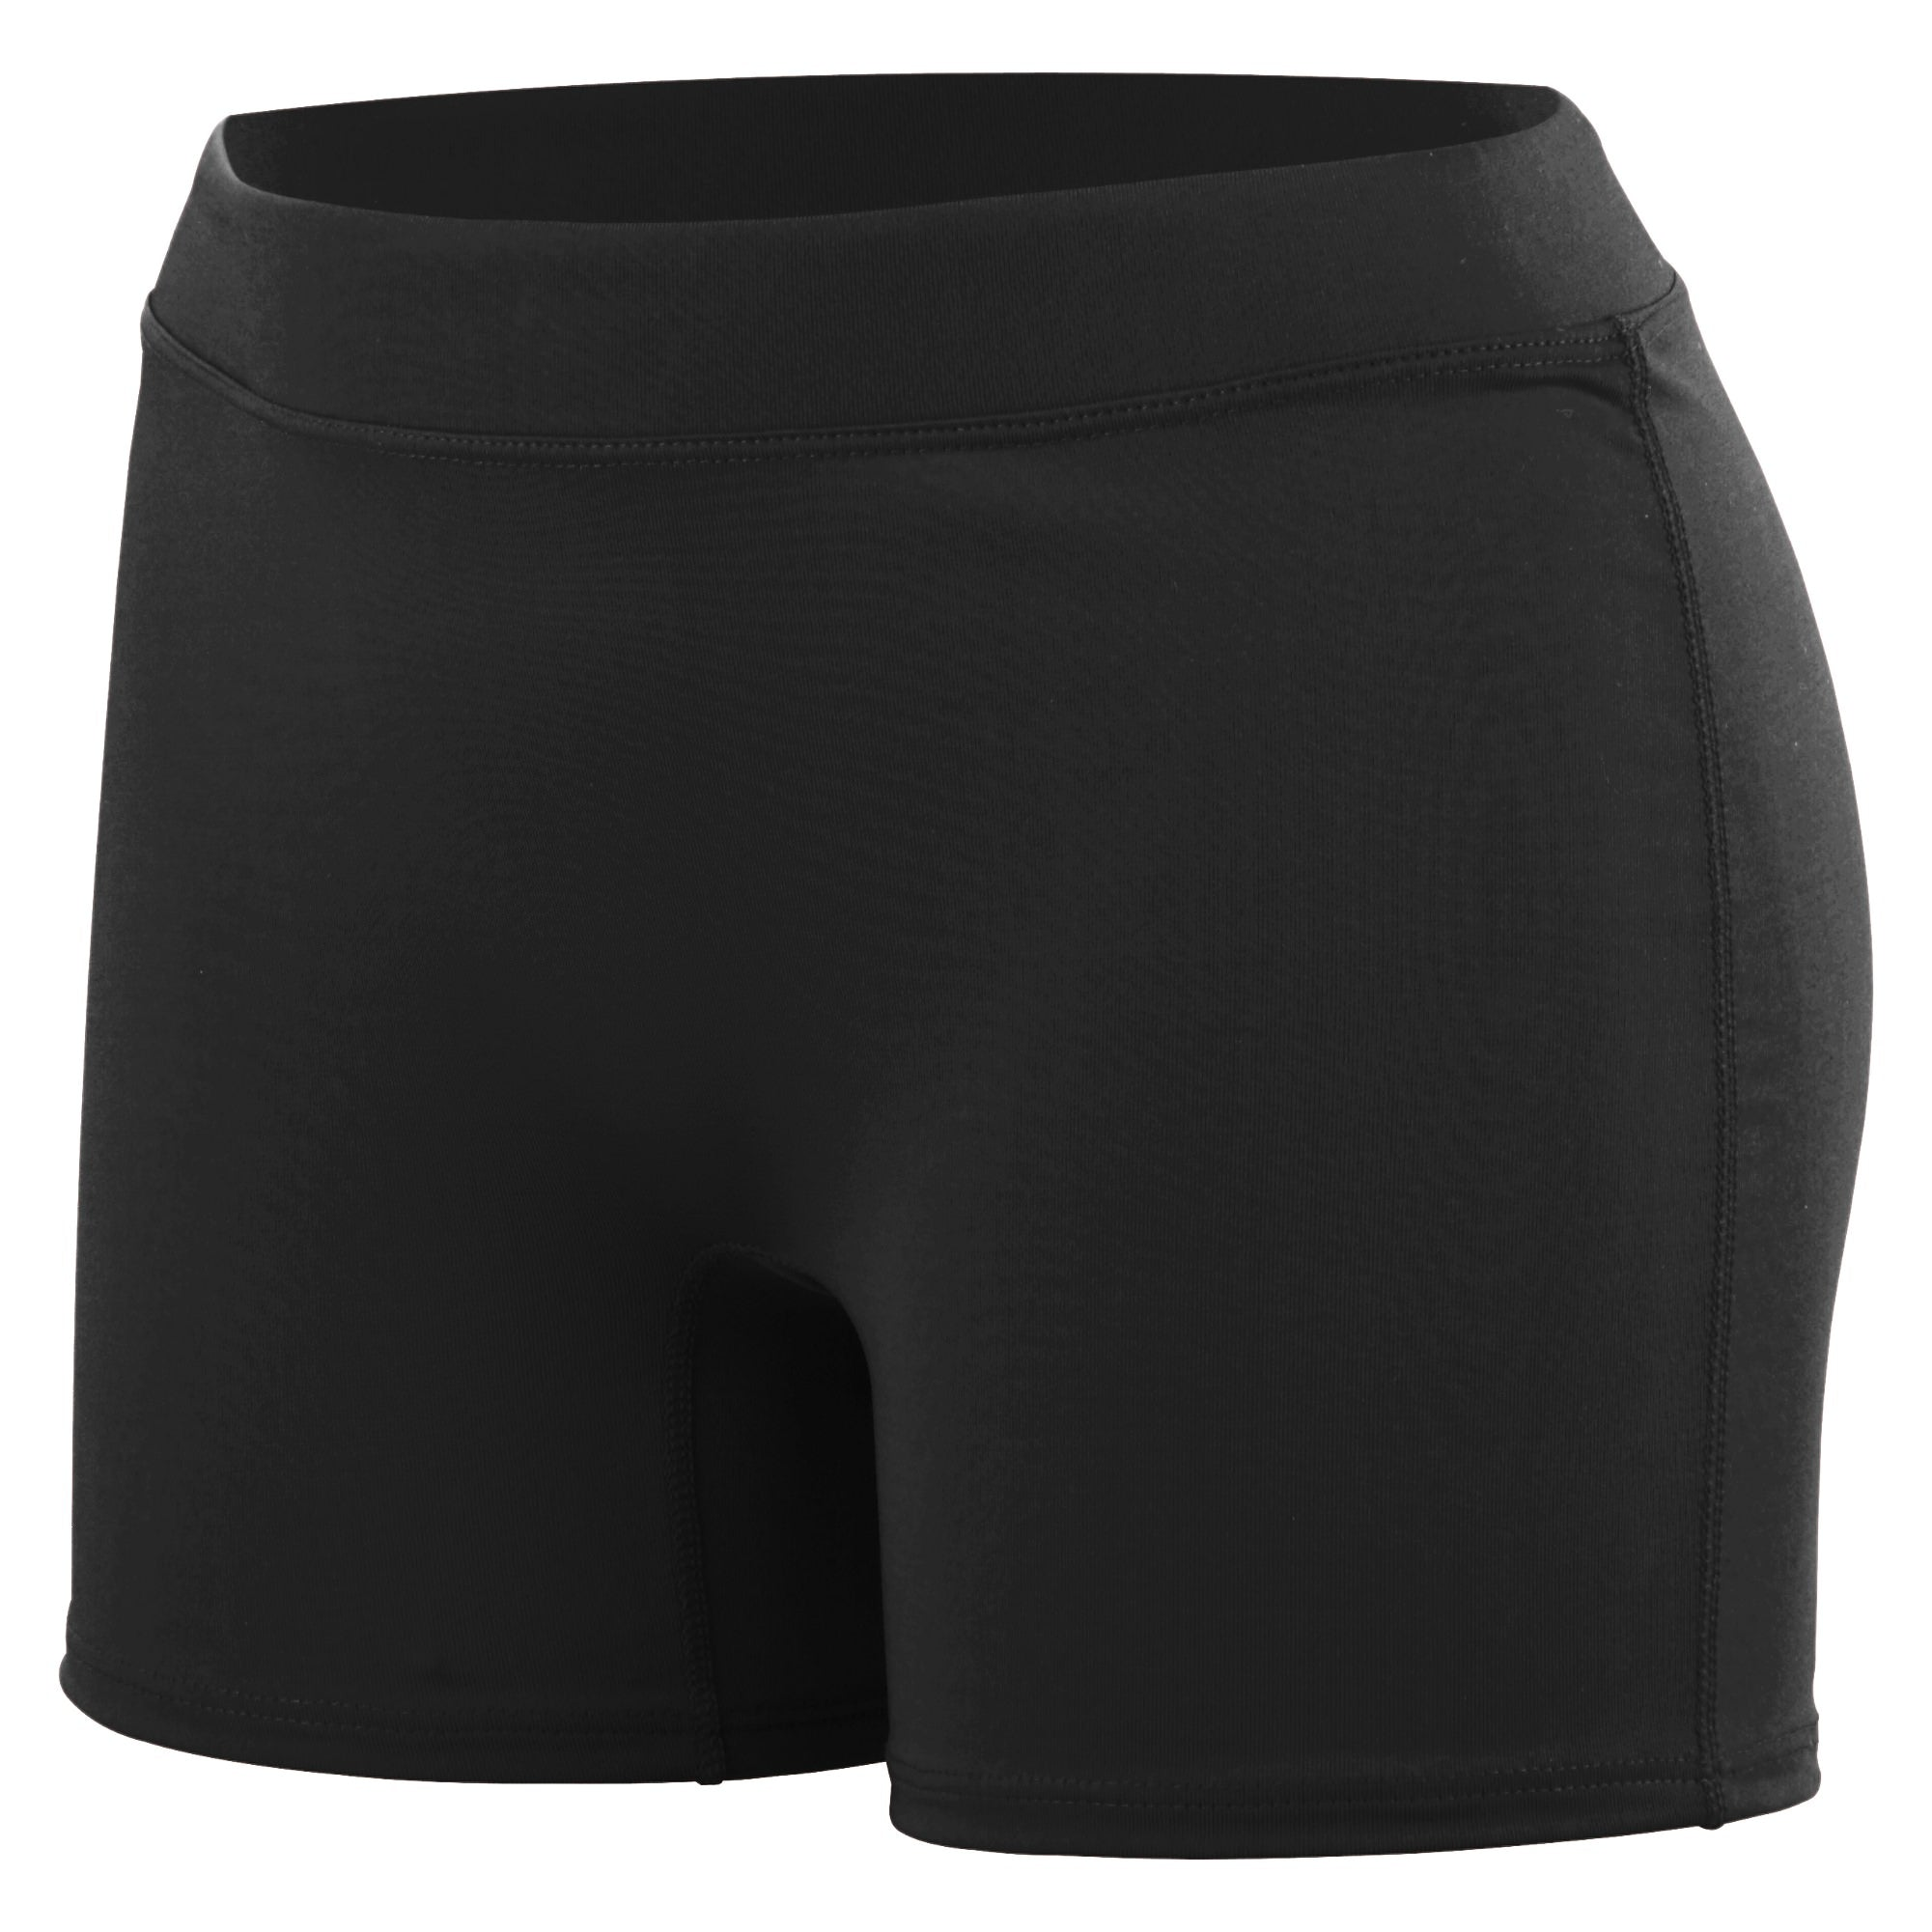 Third Degree Spandex Shorts